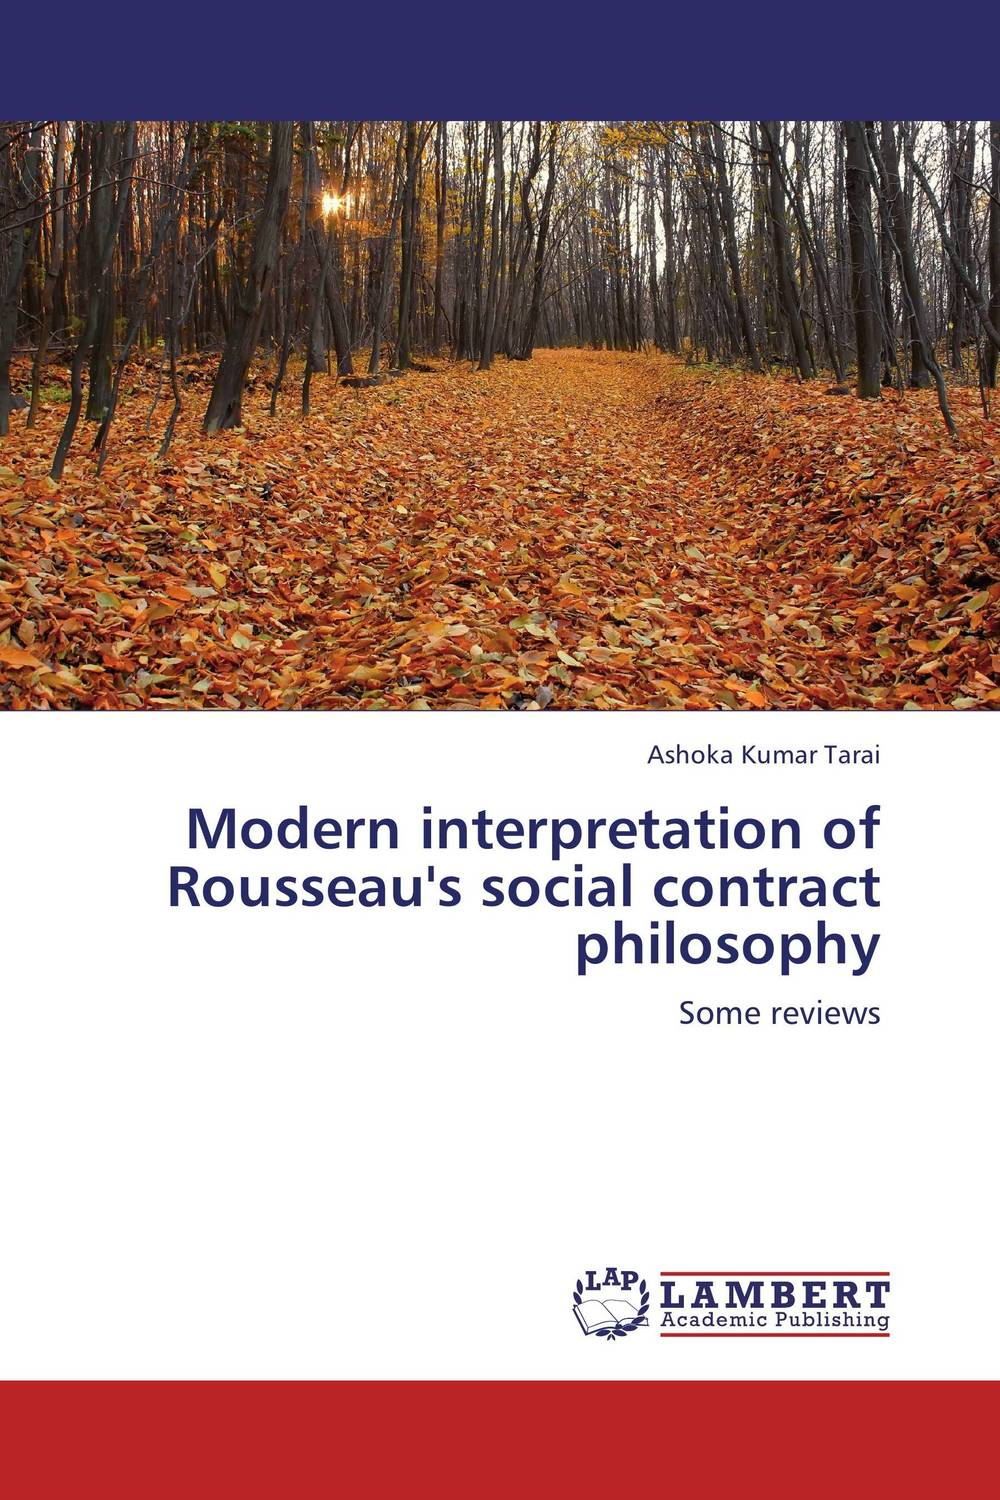 Modern interpretation of Rousseau's social contract philosophy